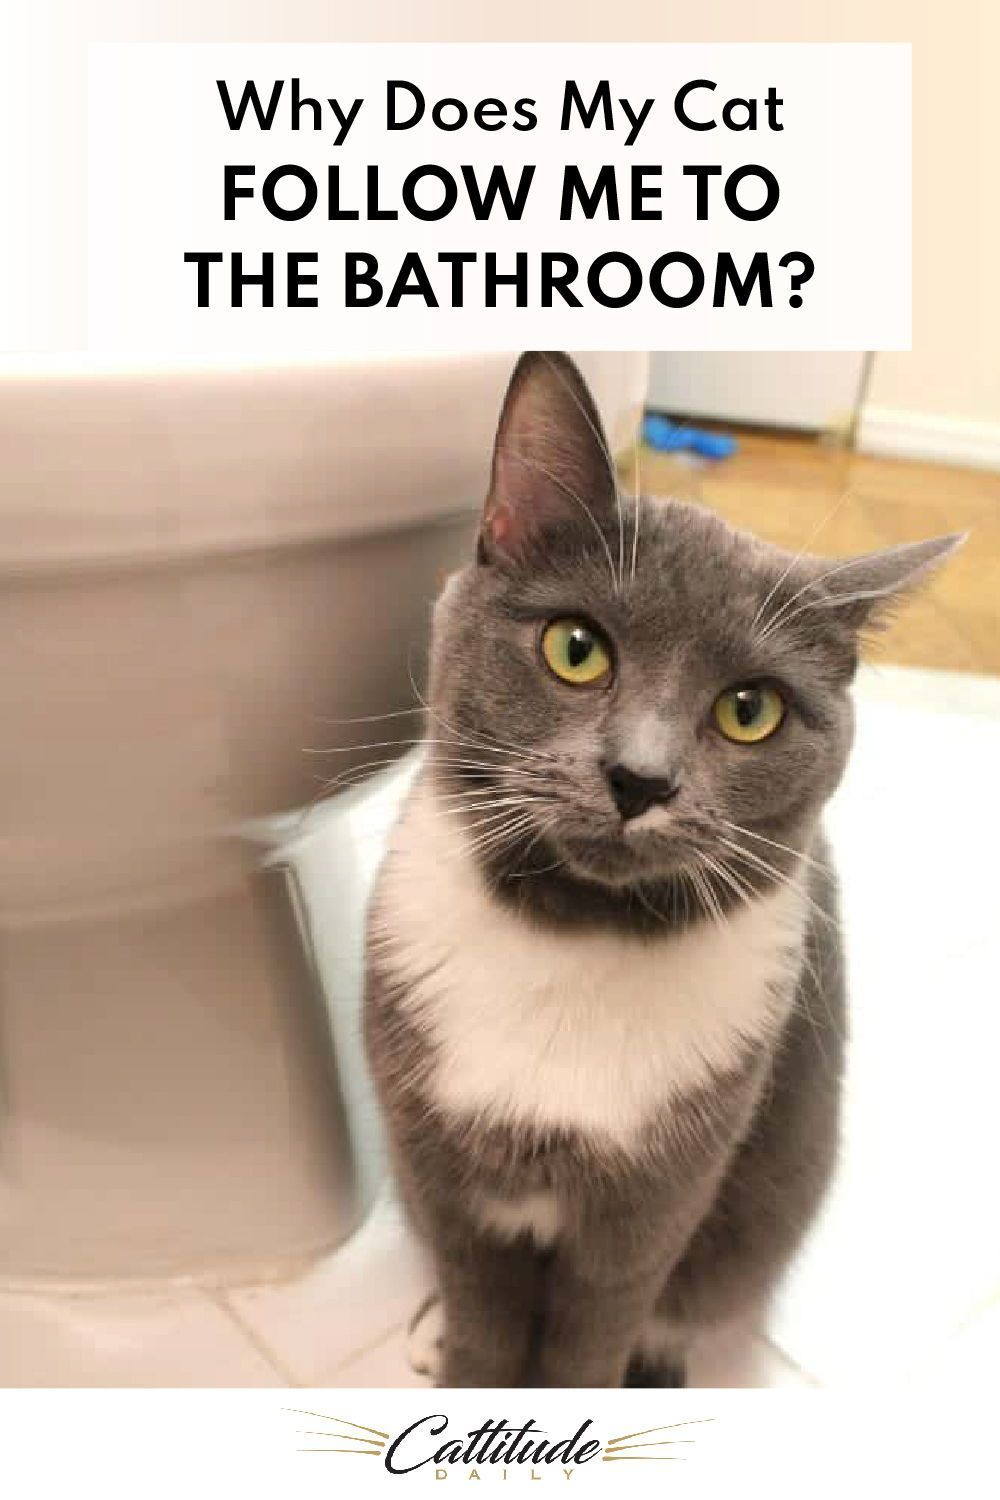 Why Does My Cat Follow Me To The Bathroom In 2020 Cats Cat Behavior Cat Facts